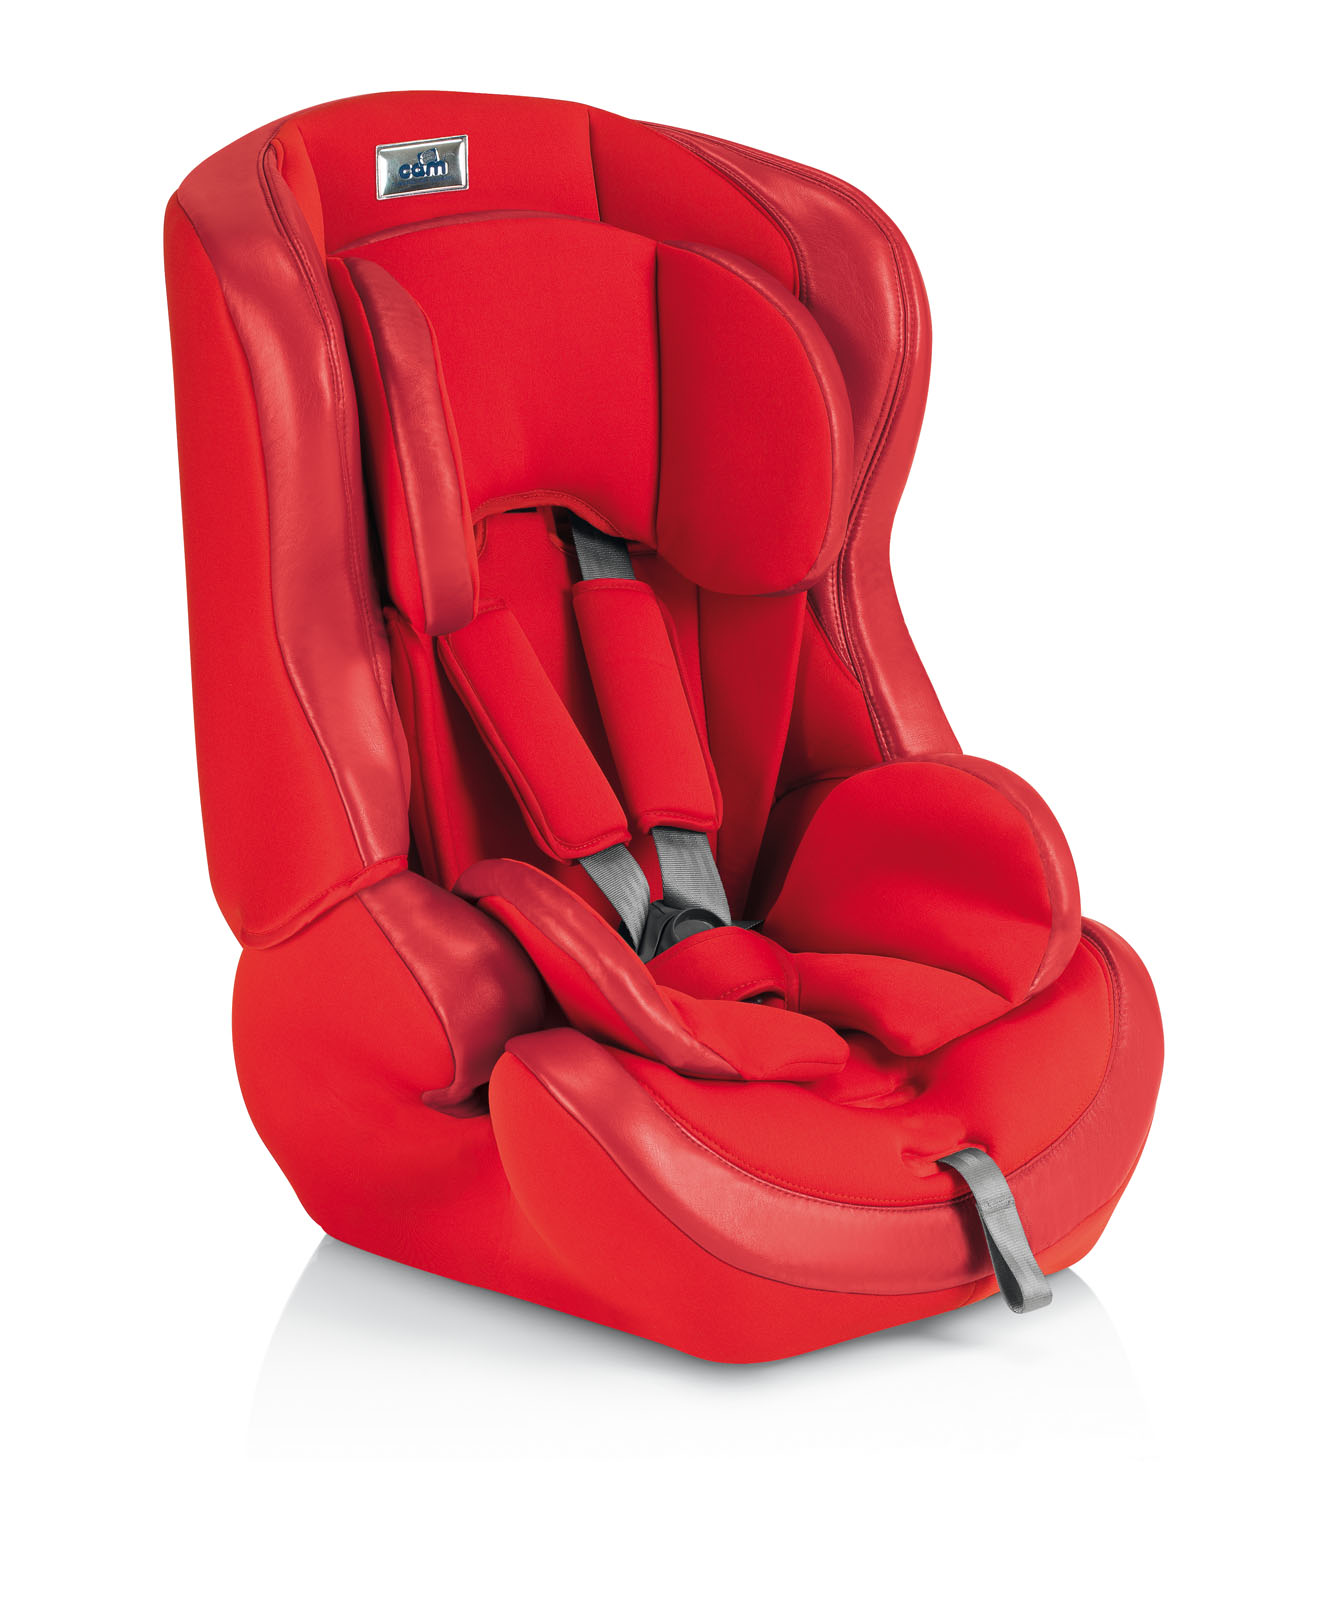 Travel Evolution Car Seat